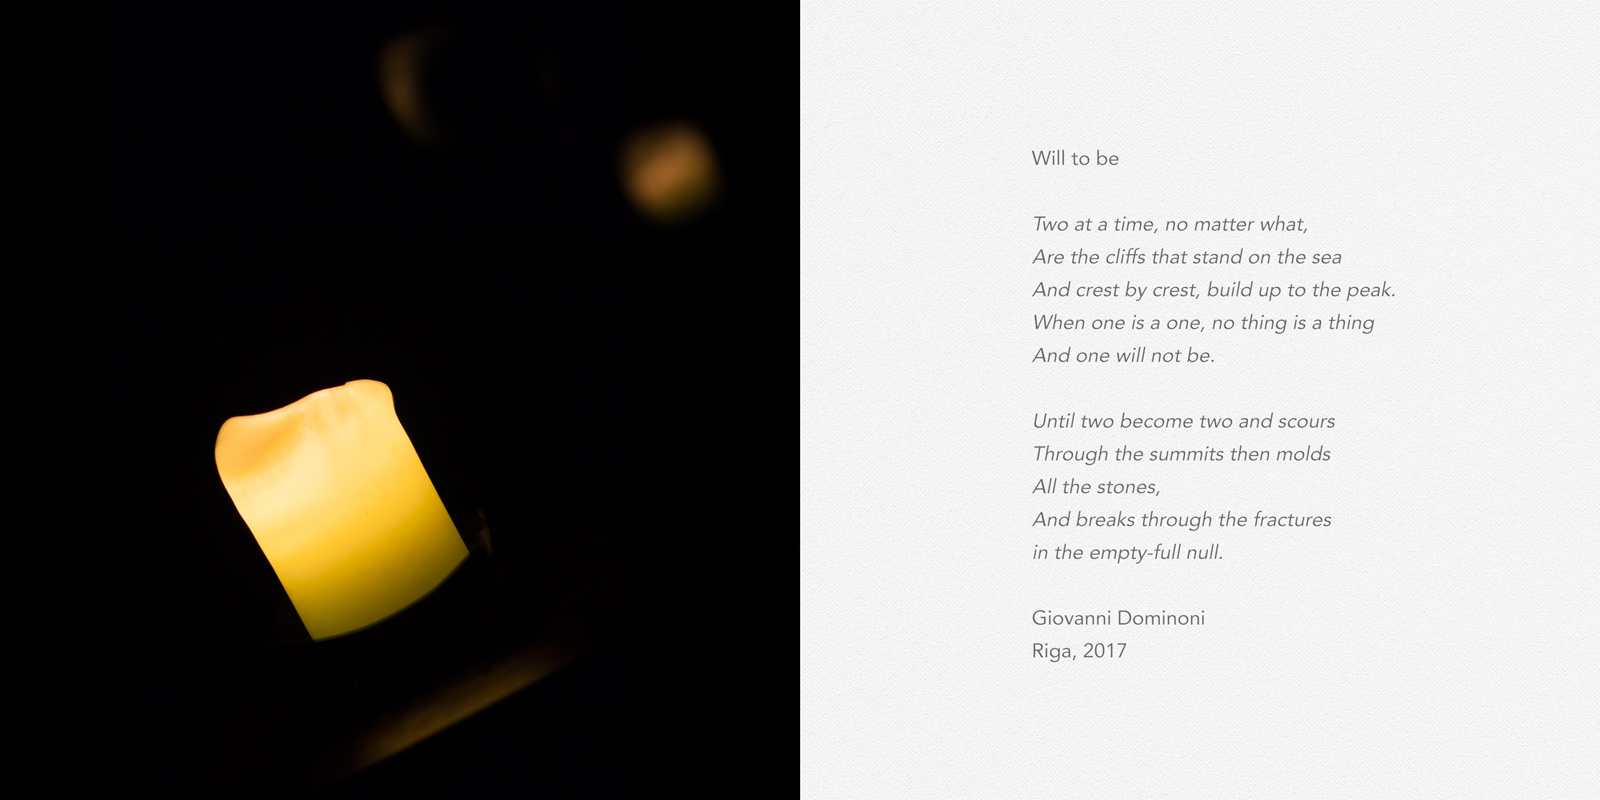 Giovanni Dominoni, Will to Be, low-light photograph and a poem